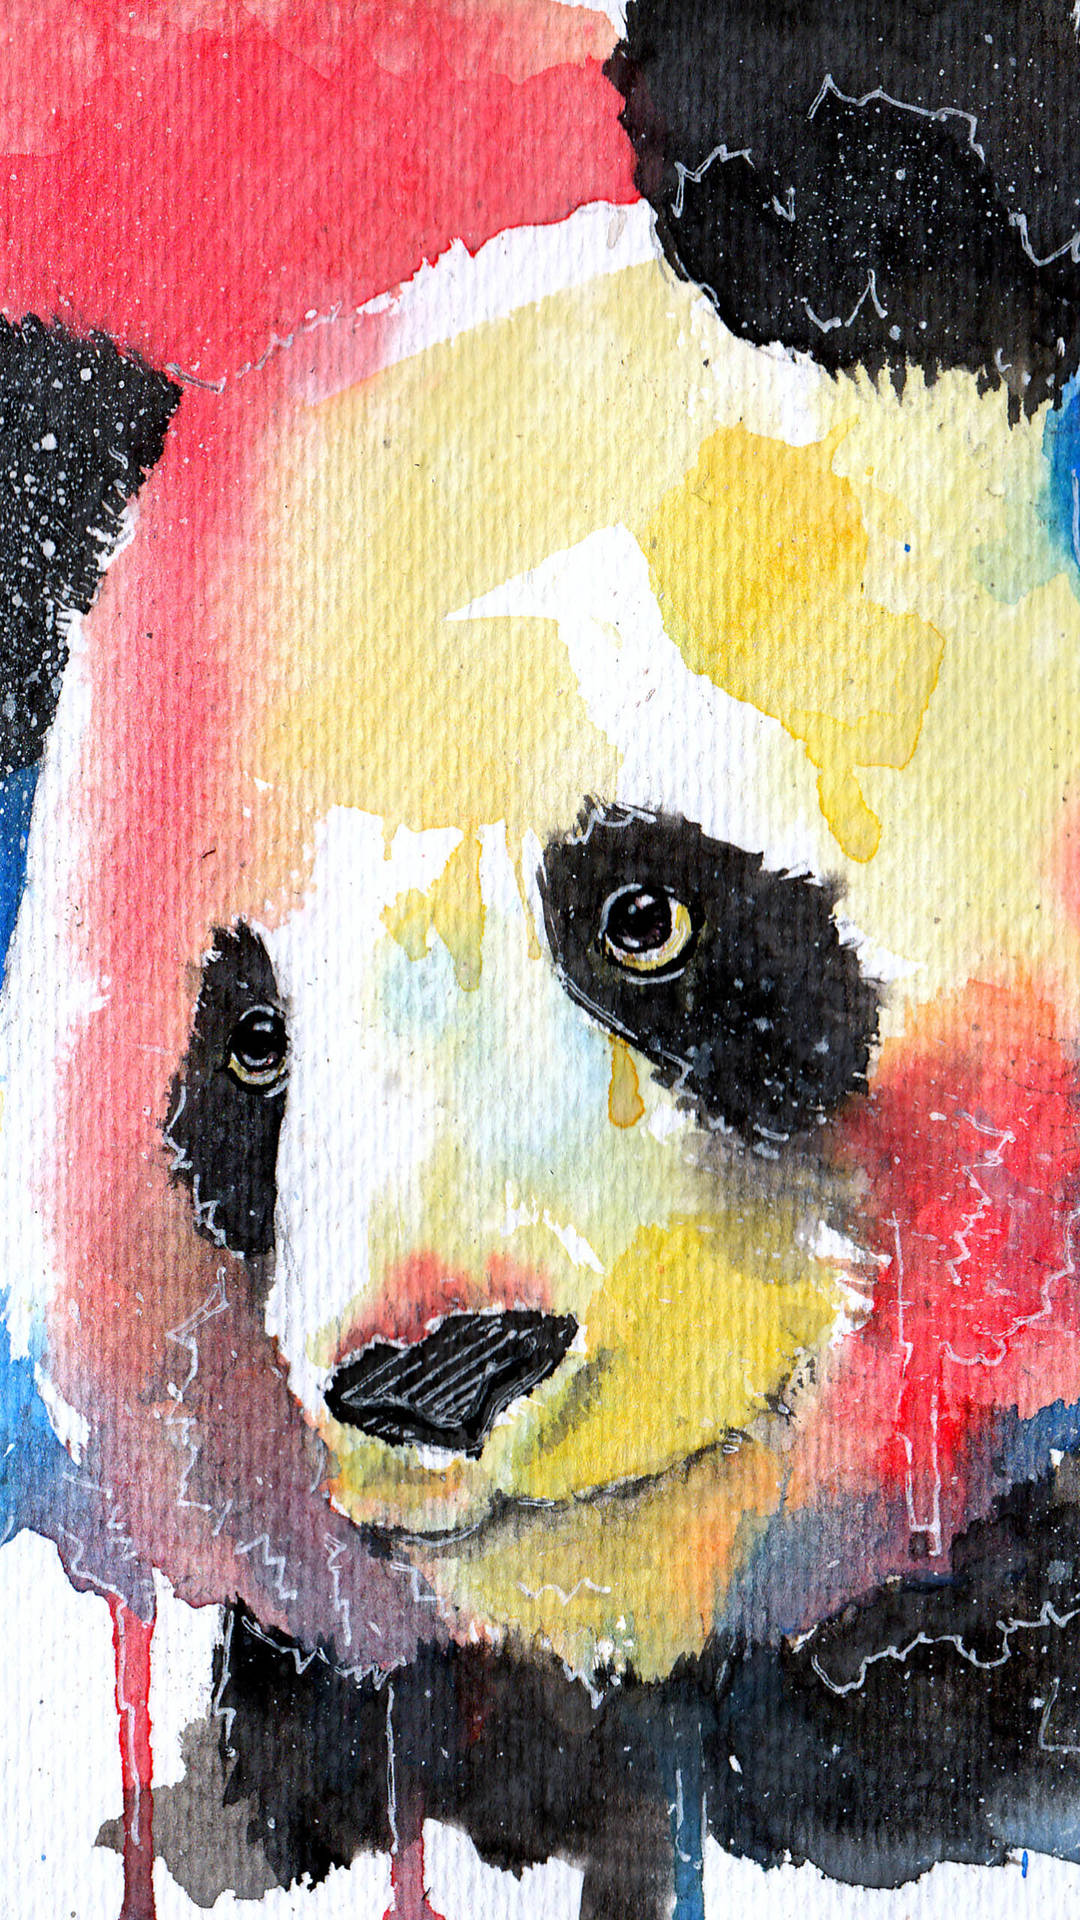 Cute Ipod Touch Wallpaper 11 Cute Panda Wallpapers For Iphone With 1920x1080